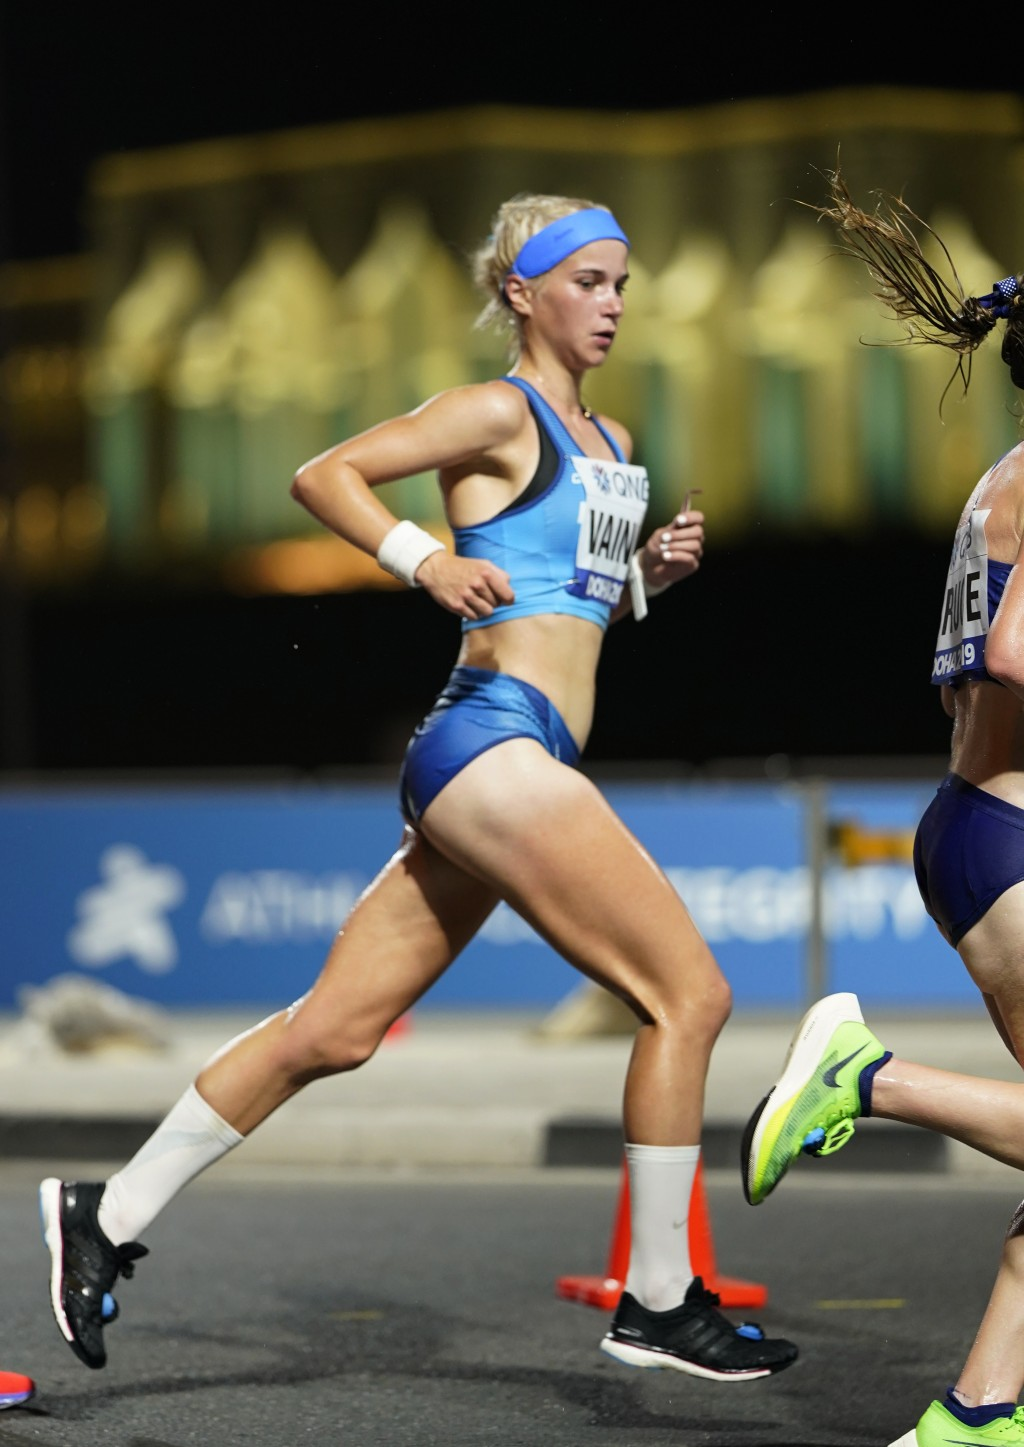 Finland's Alisa Vainio races during the women's marathon at the World Athletics Championships in Doha, Qatar, Saturday, Sept. 28, 2019. (AP Photo/Nick...